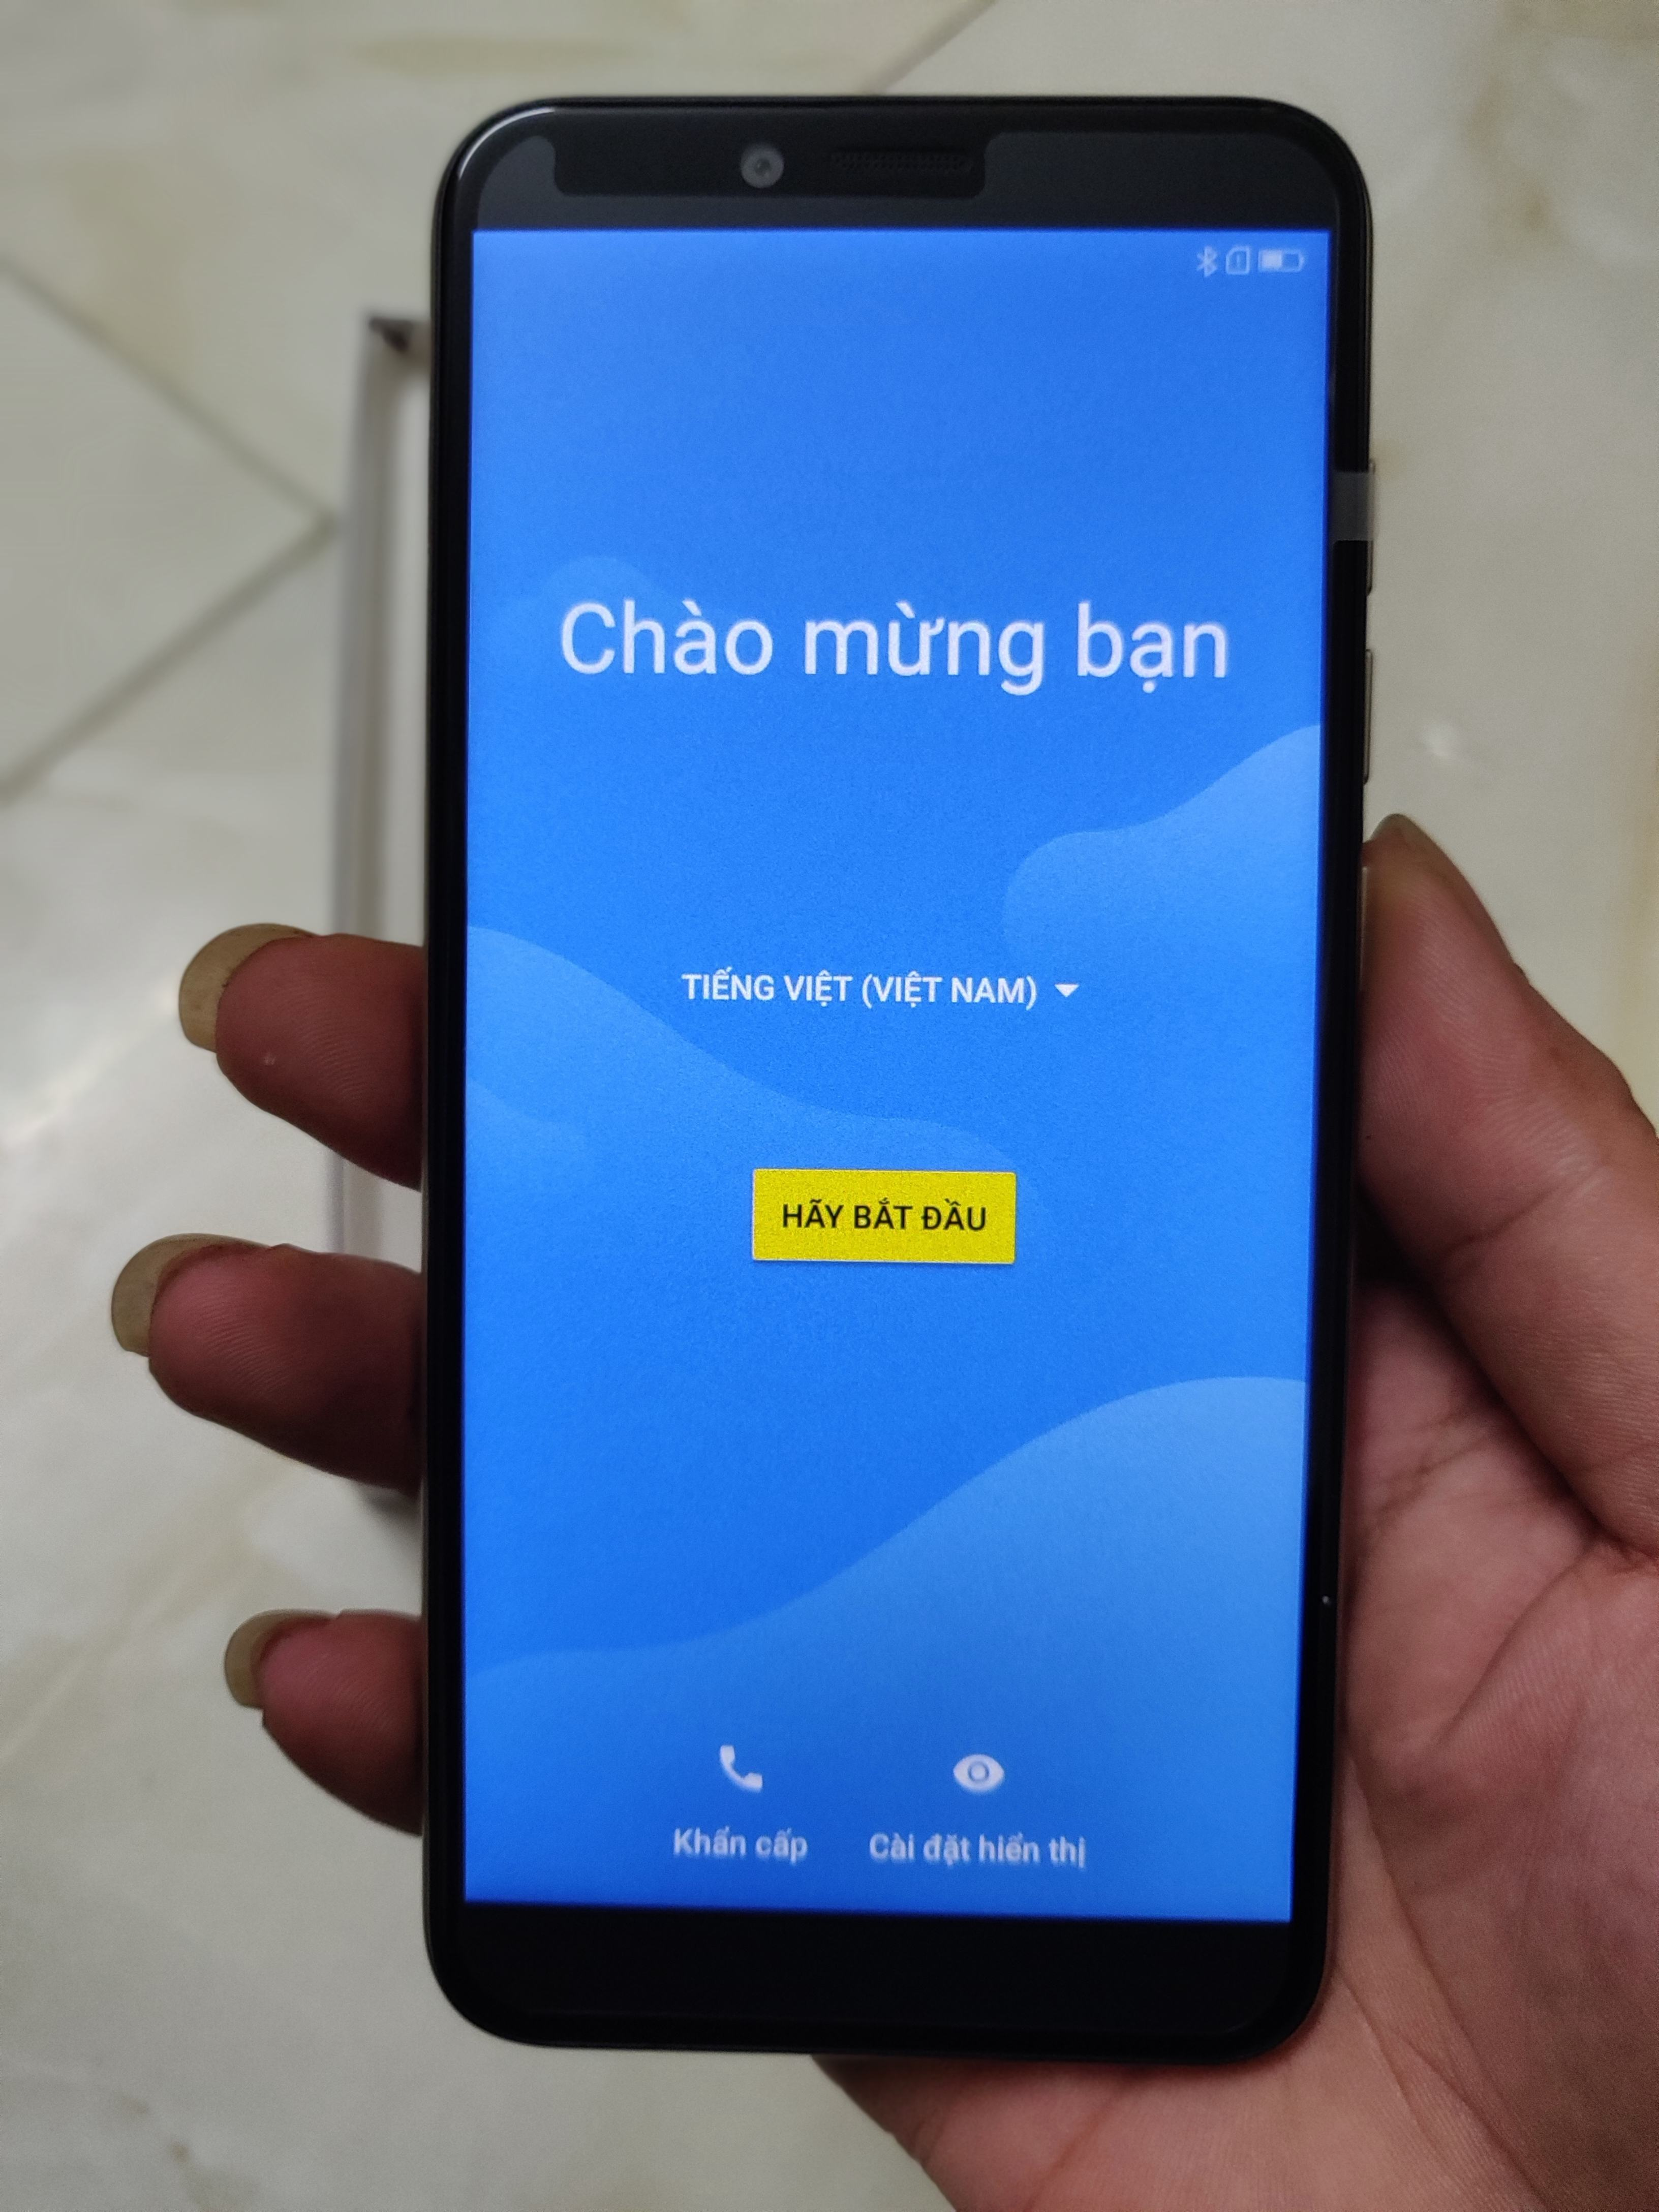 lenovo-k5-play-rom-tieng-viet-root-twrp-unbrick-repair-imei